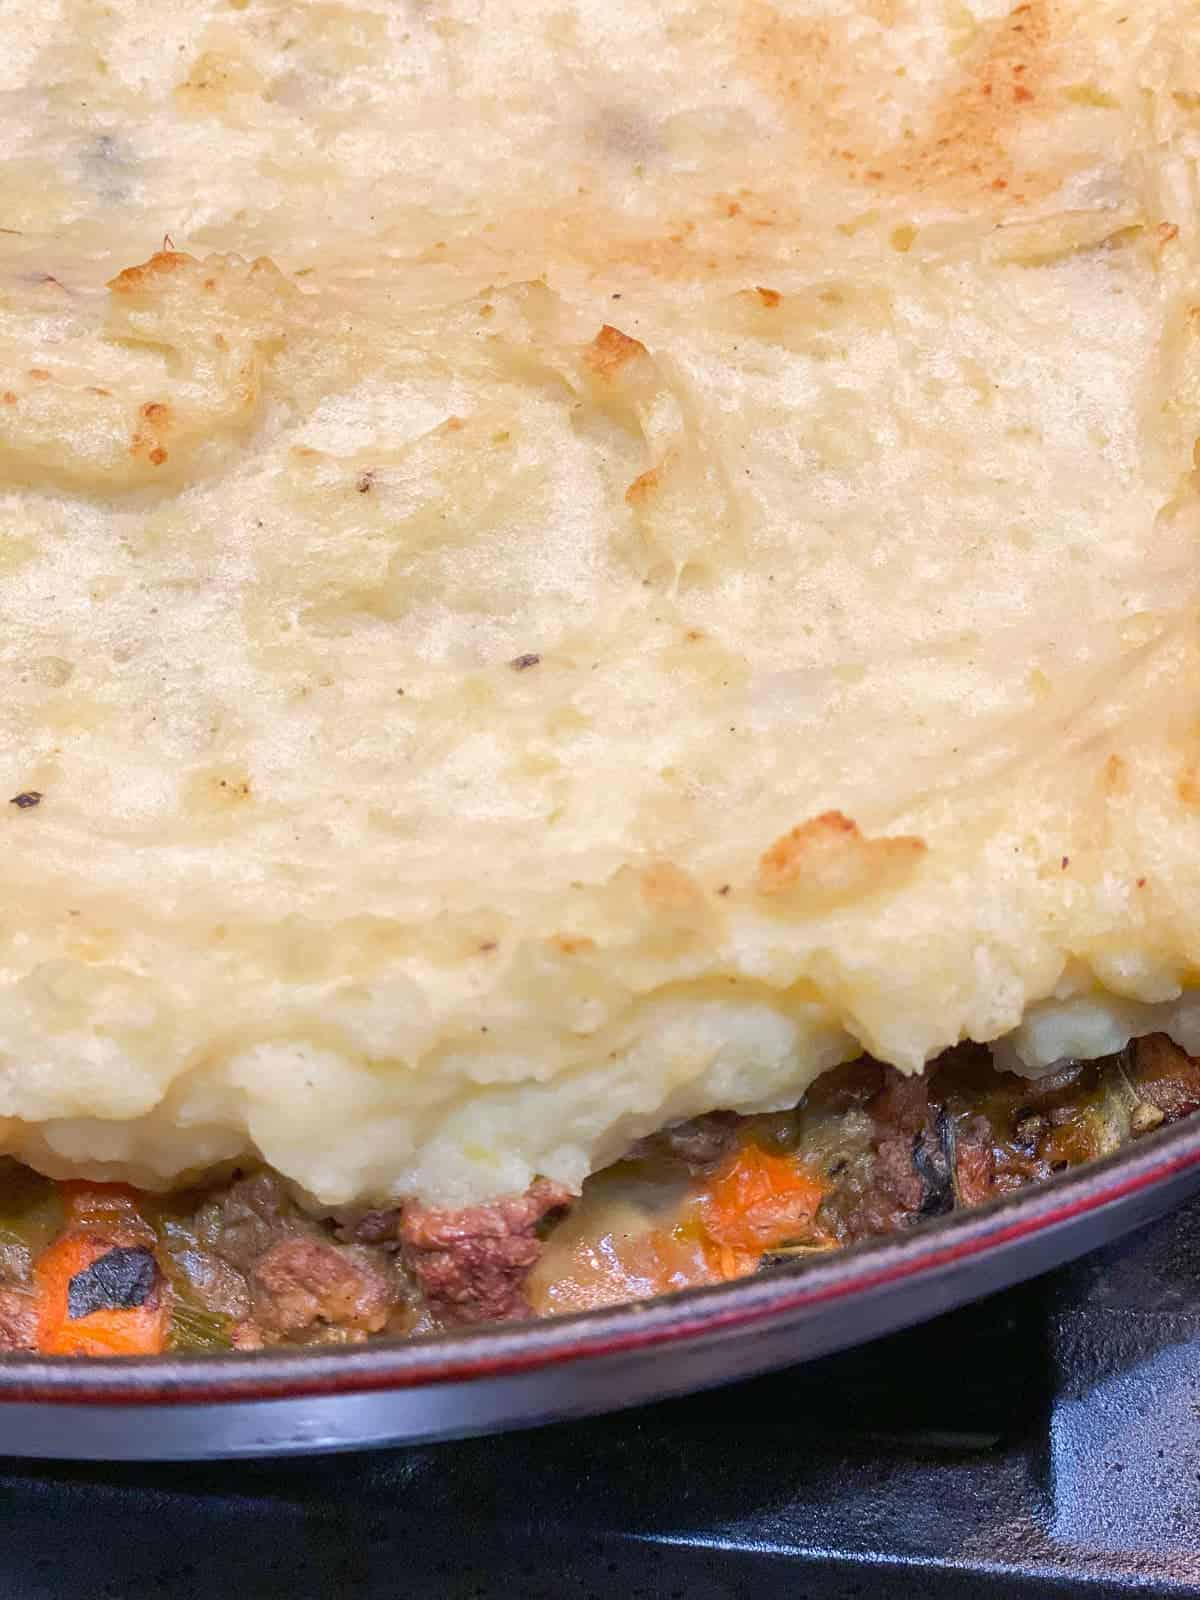 shepherd's pie with mashed potatoes, right out of the oven.